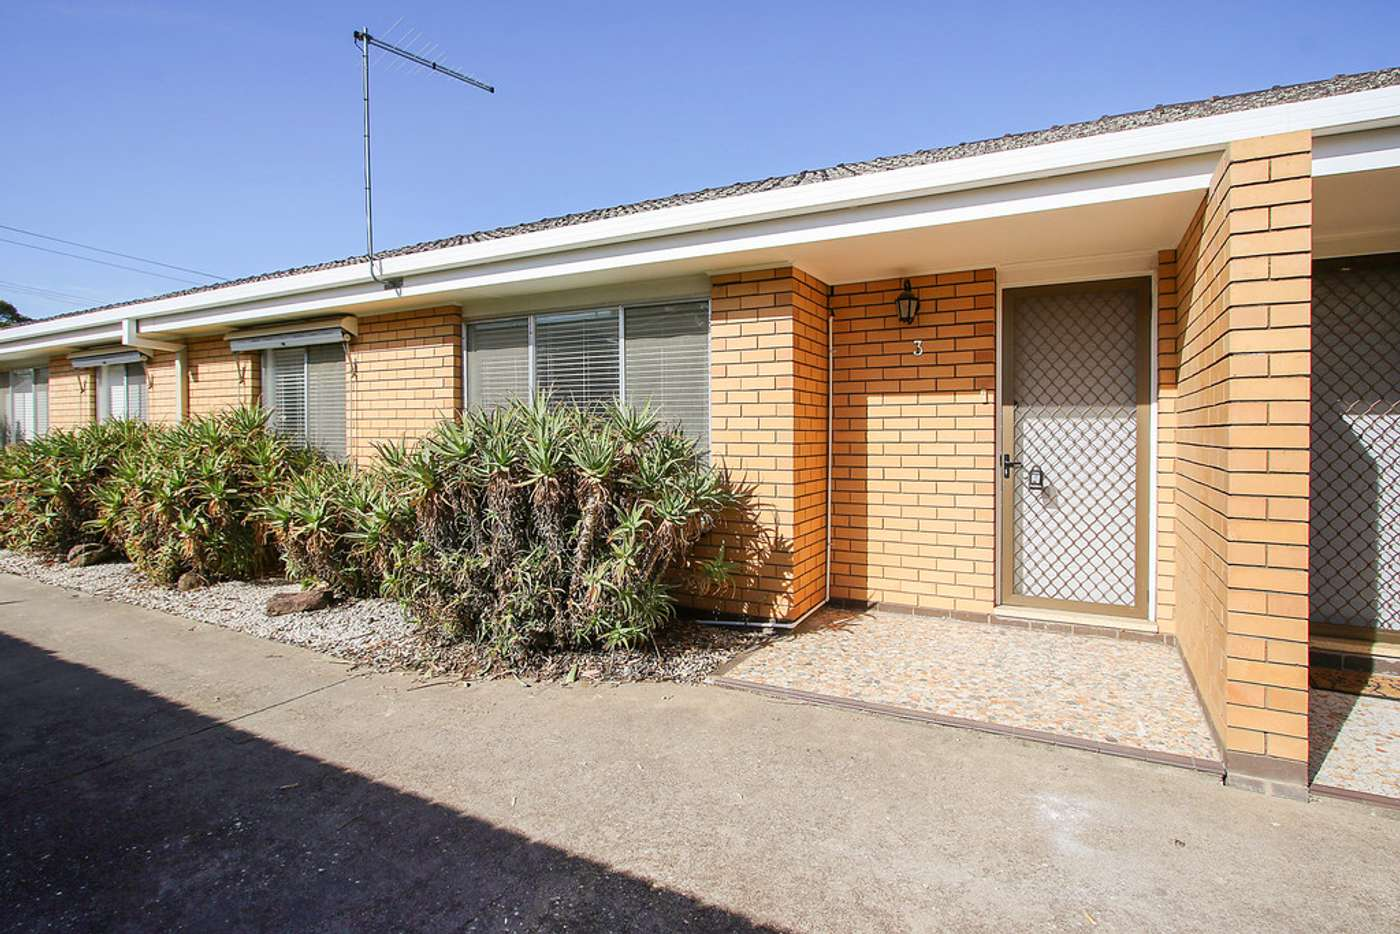 Main view of Homely unit listing, 3/461 Prune Street, Lavington NSW 2641